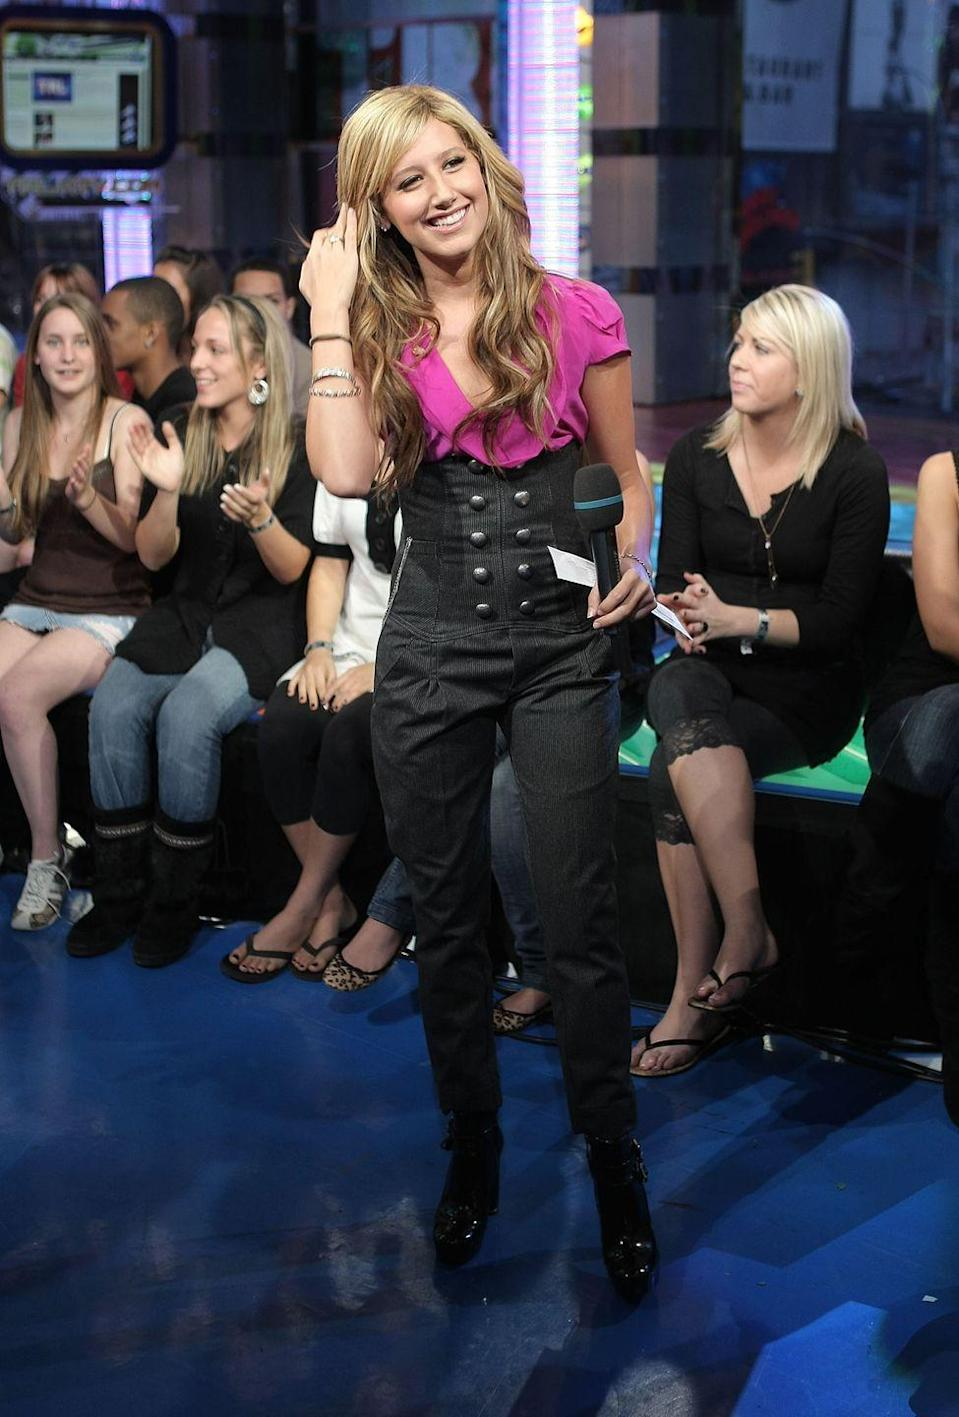 <p>Back in 2007, I was totally on board with the high-waisted pant trend, but Ashley Tisdale took it too far. Does anyone else think she may just be wearing a girdle and calling it ~fashun~?</p>